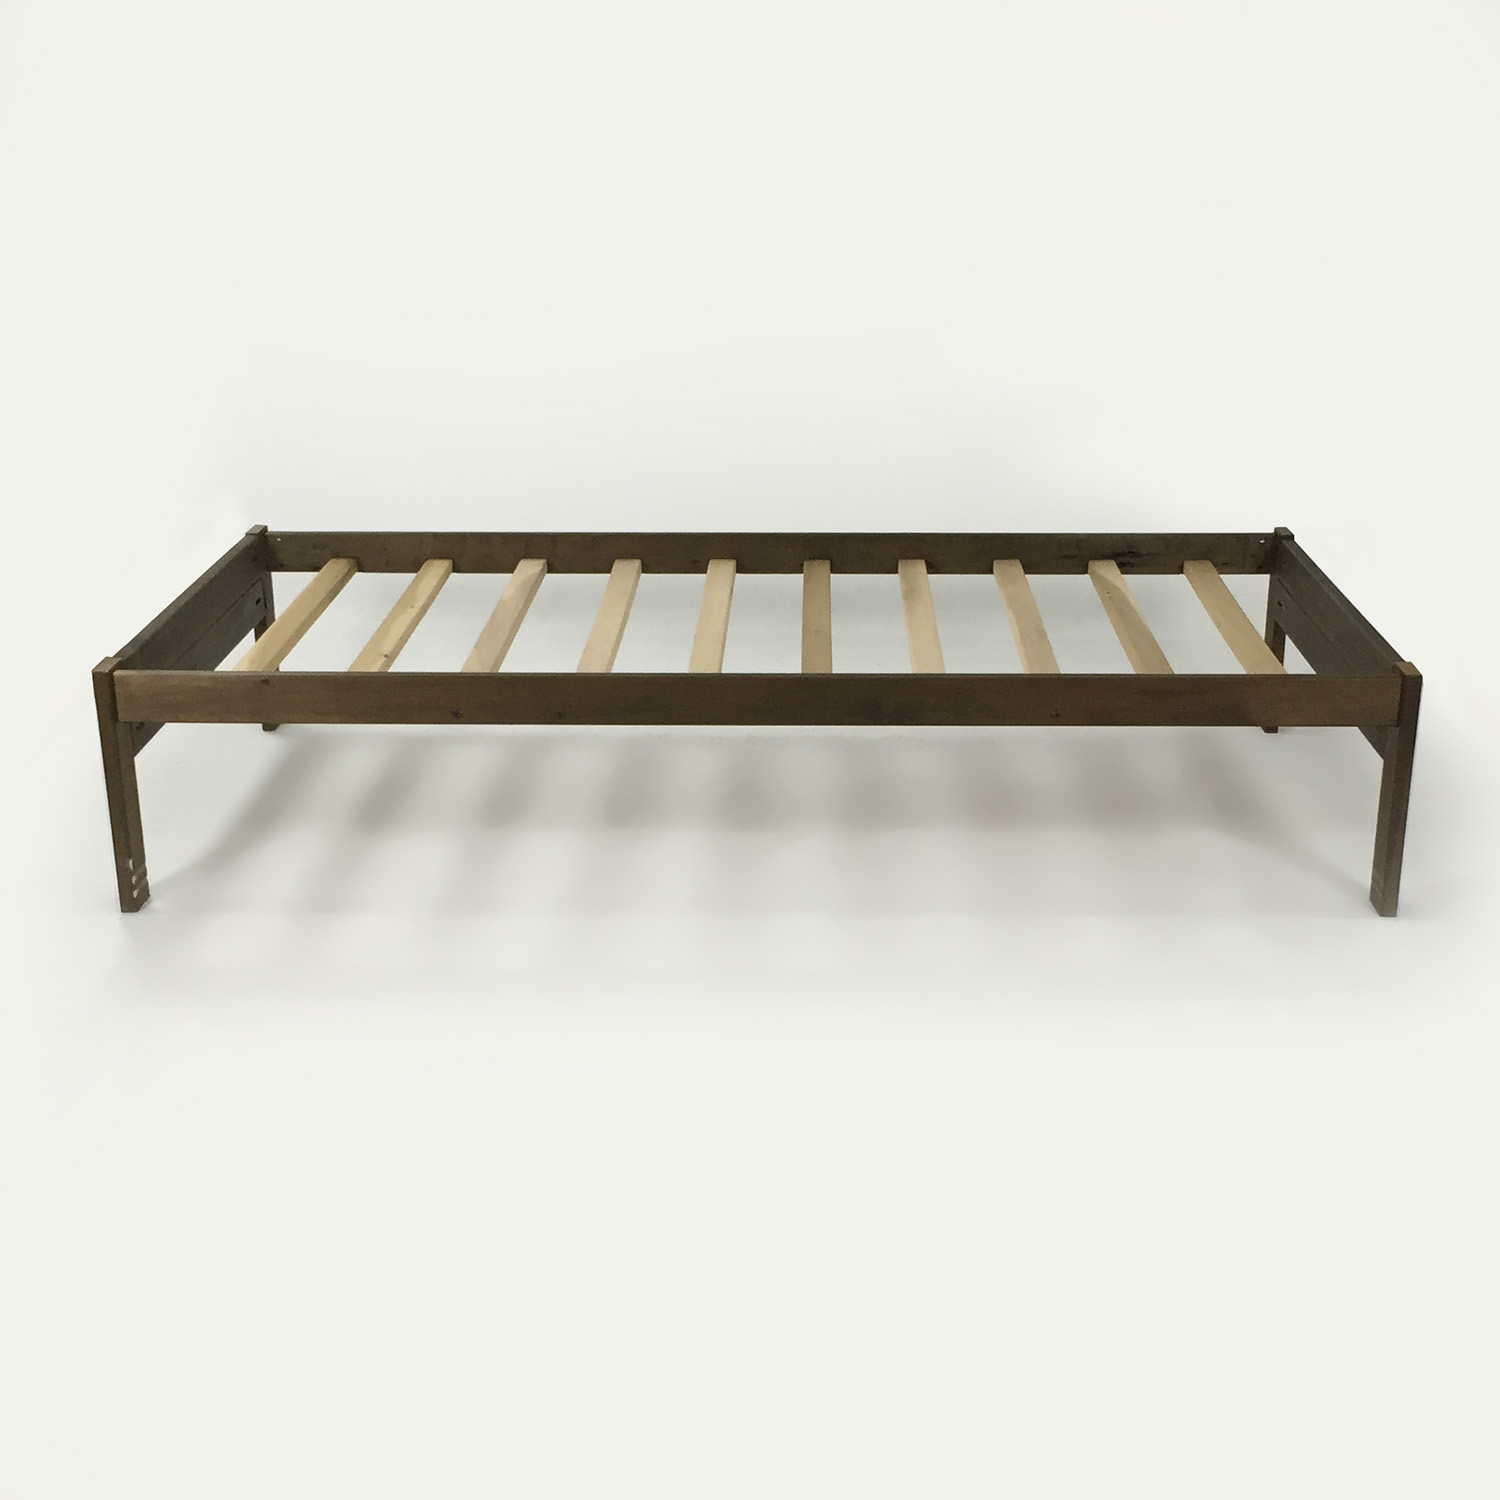 Custom Trundle Bed - Pair of Twin Beds for sale